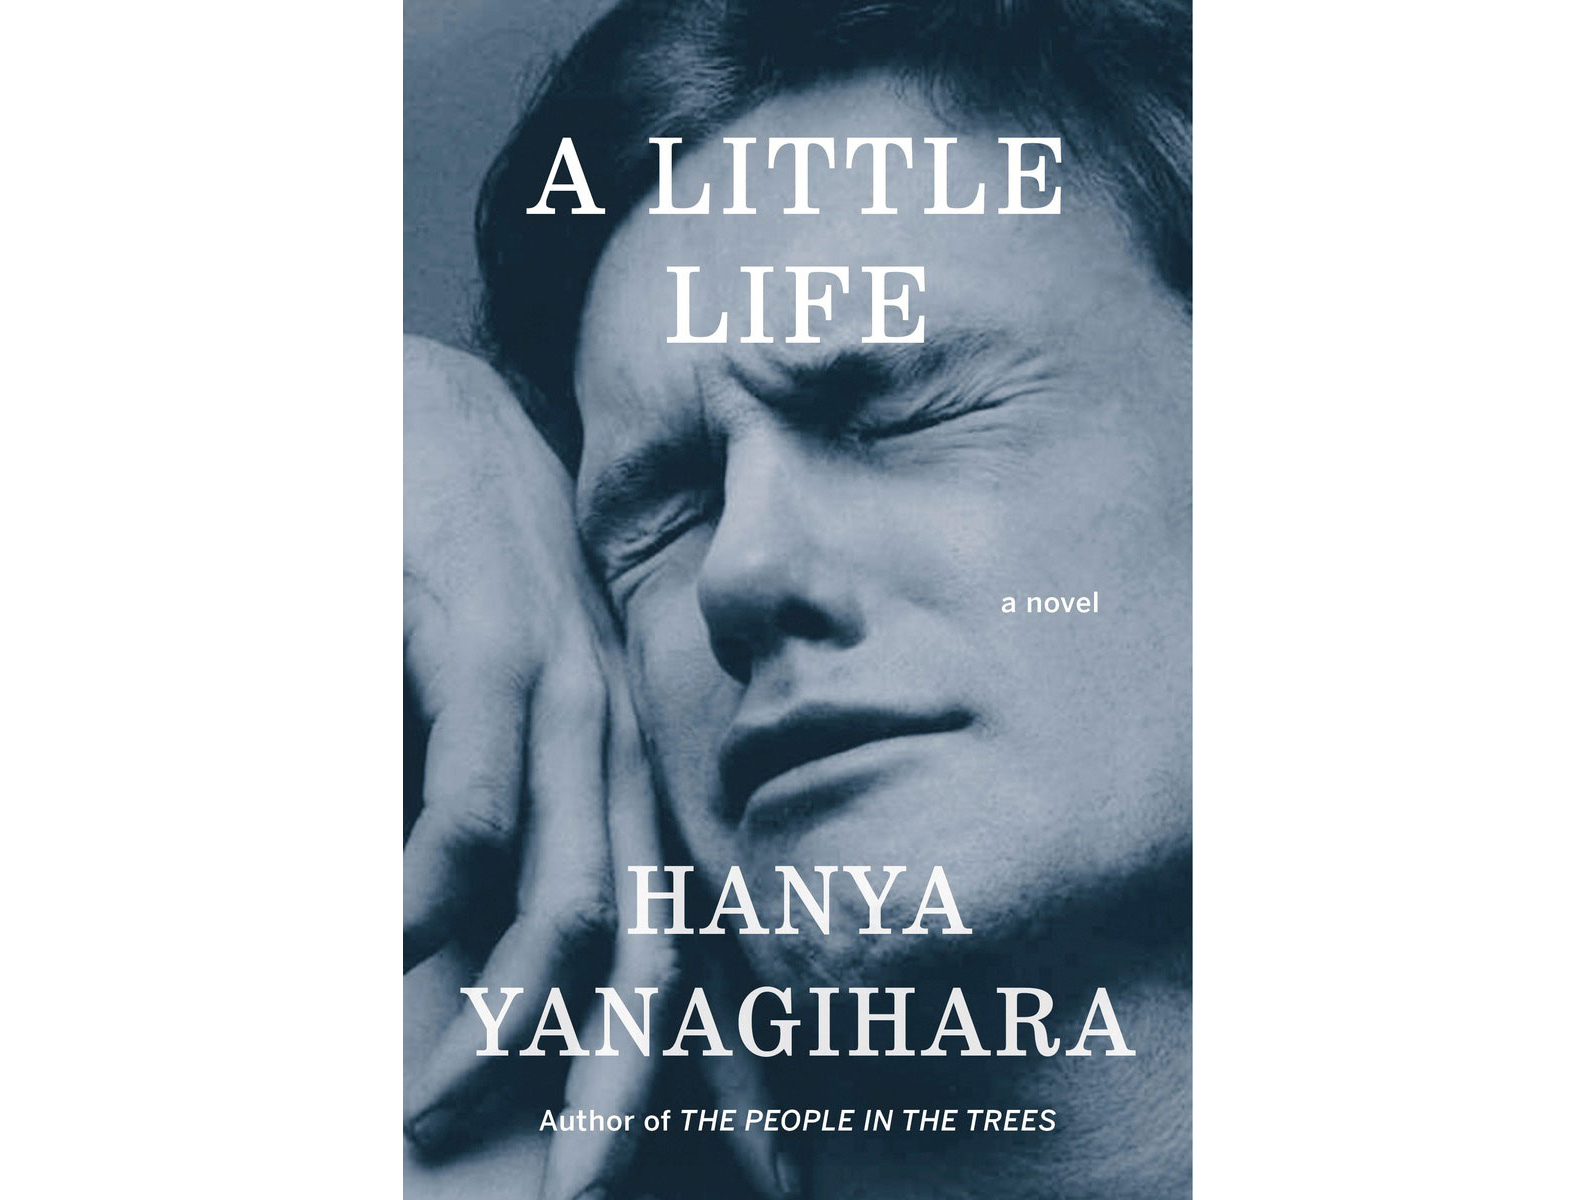 A Little Life, by Hanya Yanagihara